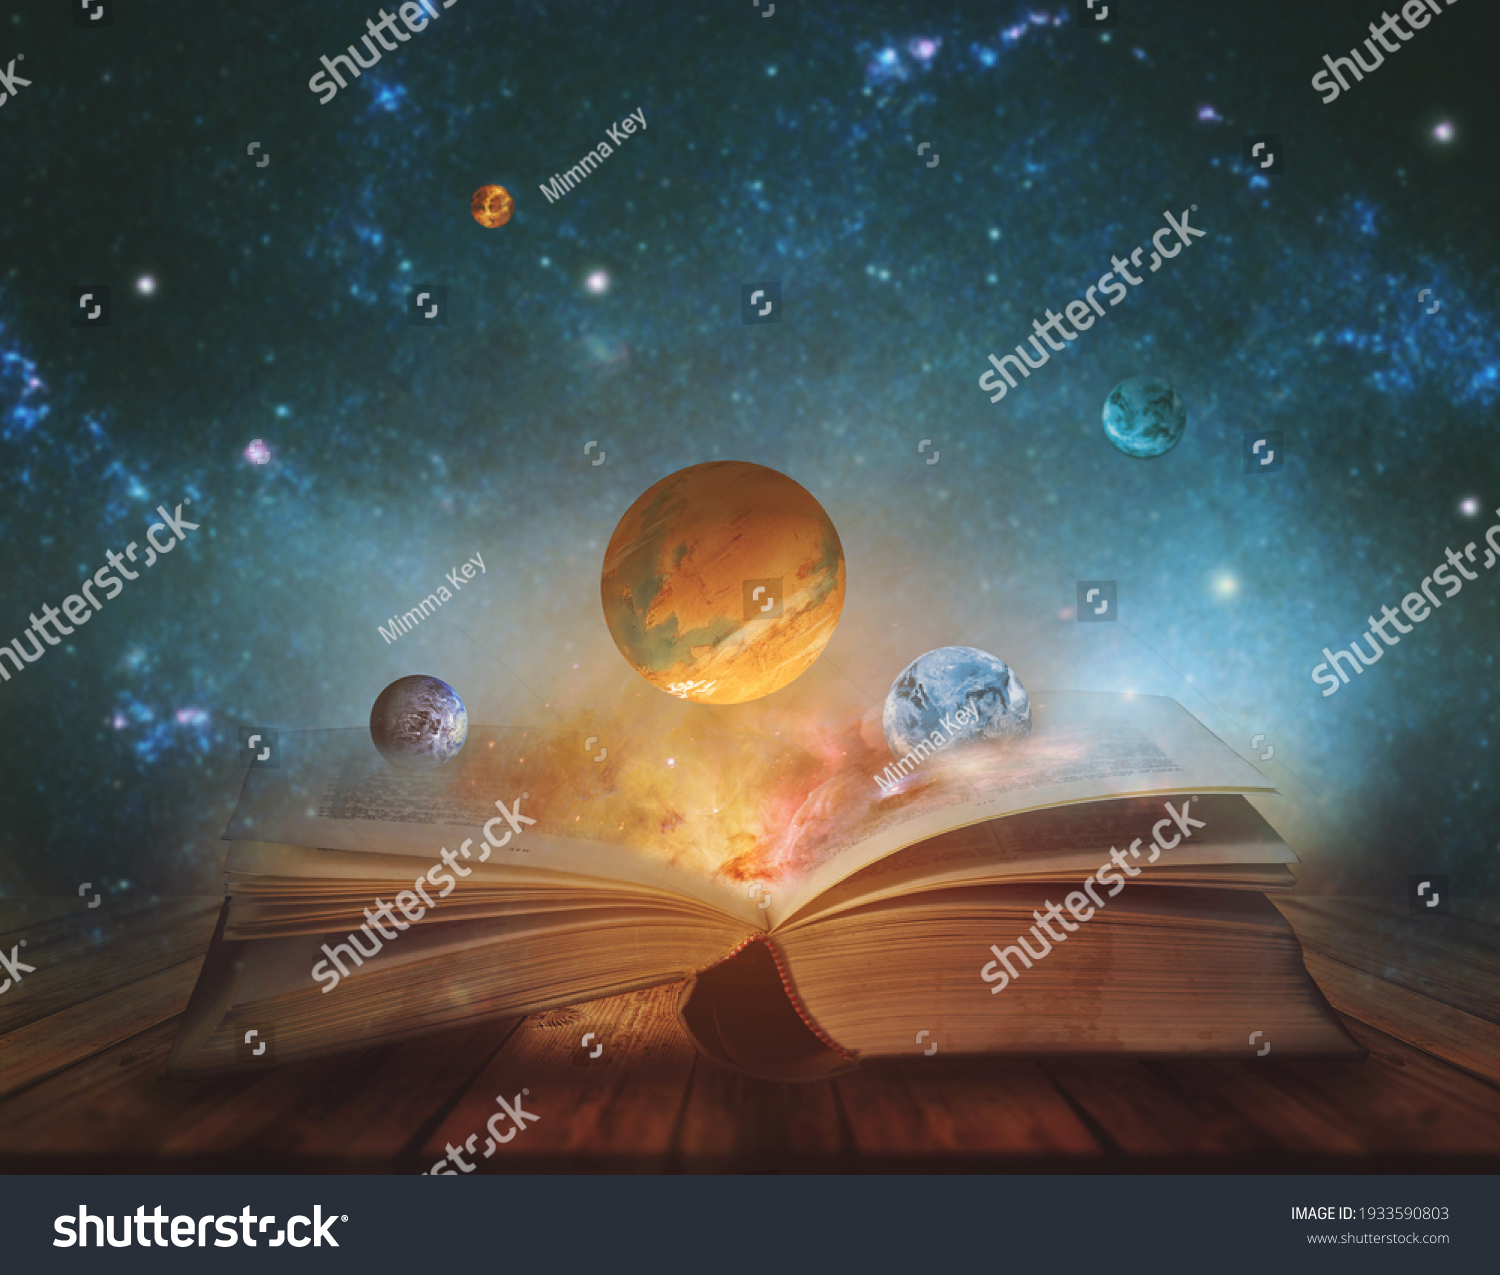 Book of the universe - opened magic book with planets and galaxies. Elements of this image furnished by NASA #1933590803